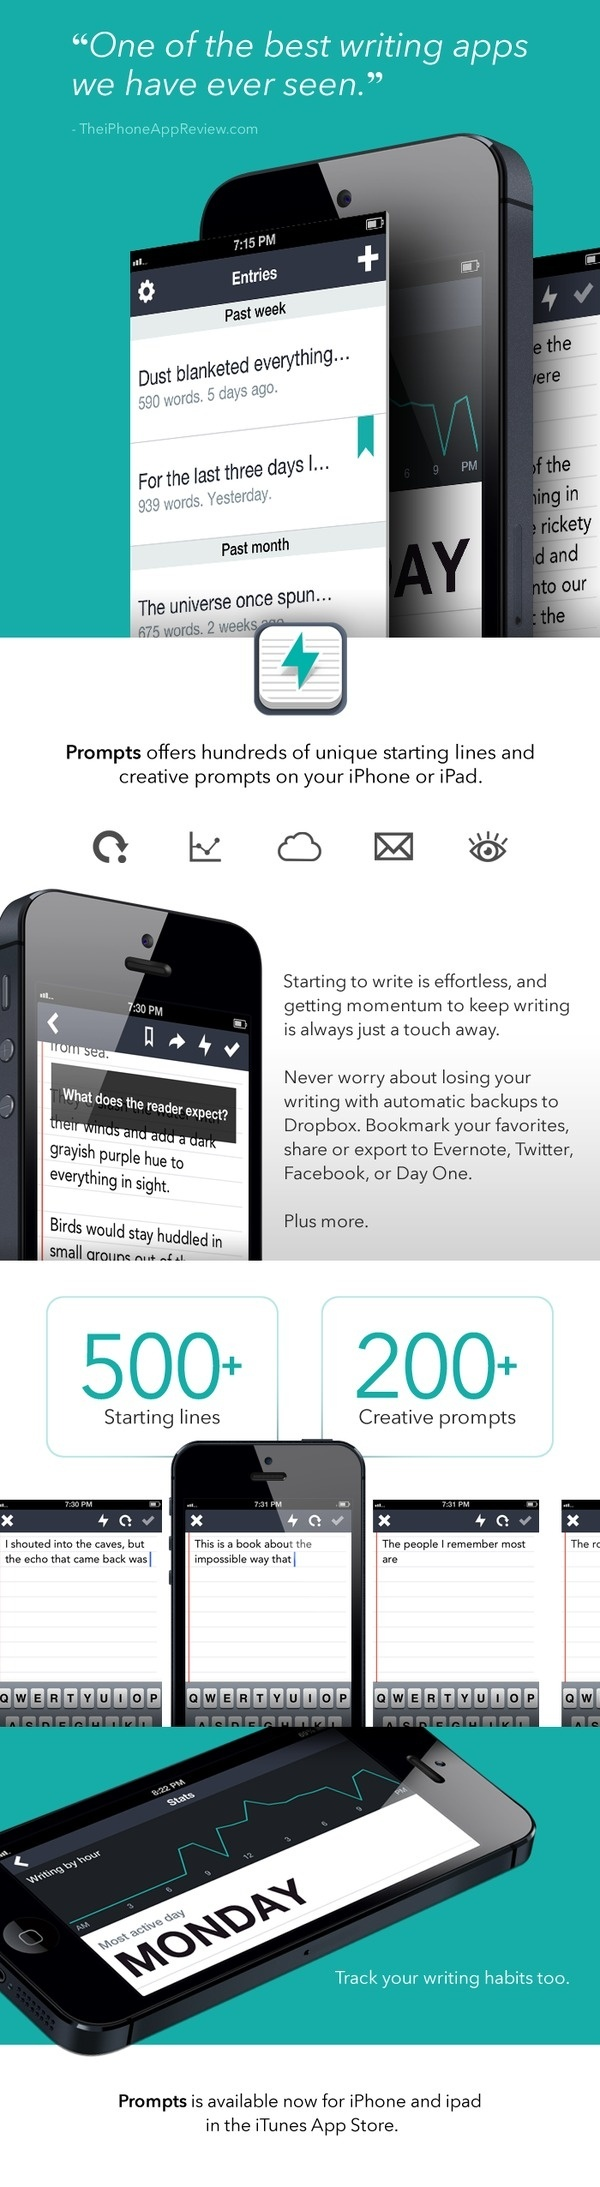 Prompts writing app Infographic #writer #infographic #writing #iphone #app #ios #prompt